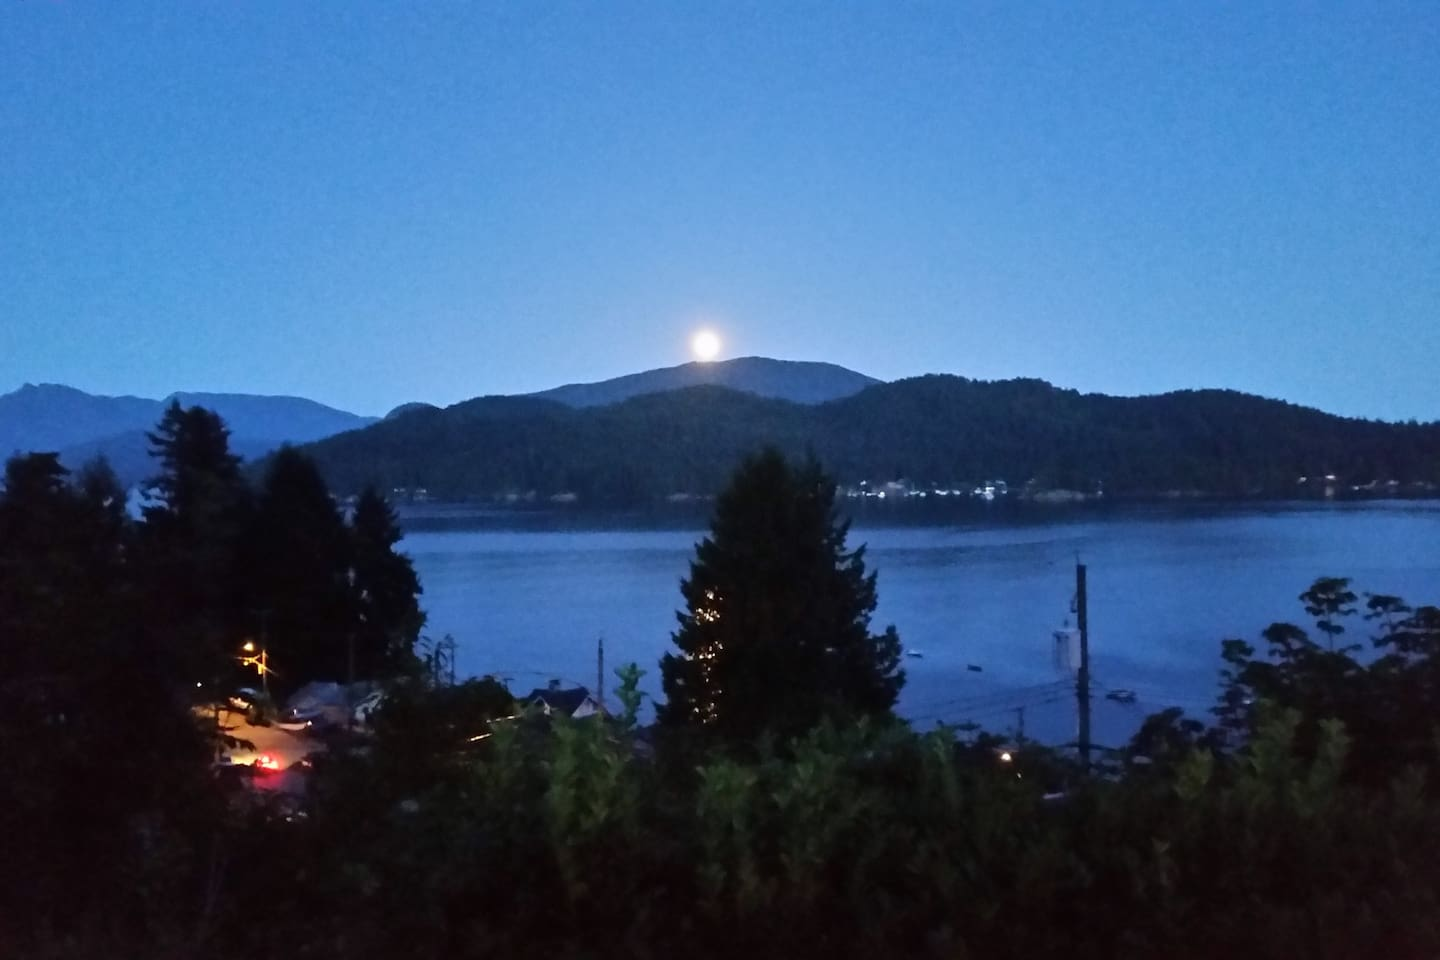 Full moon rising over Keats Island from the front yard